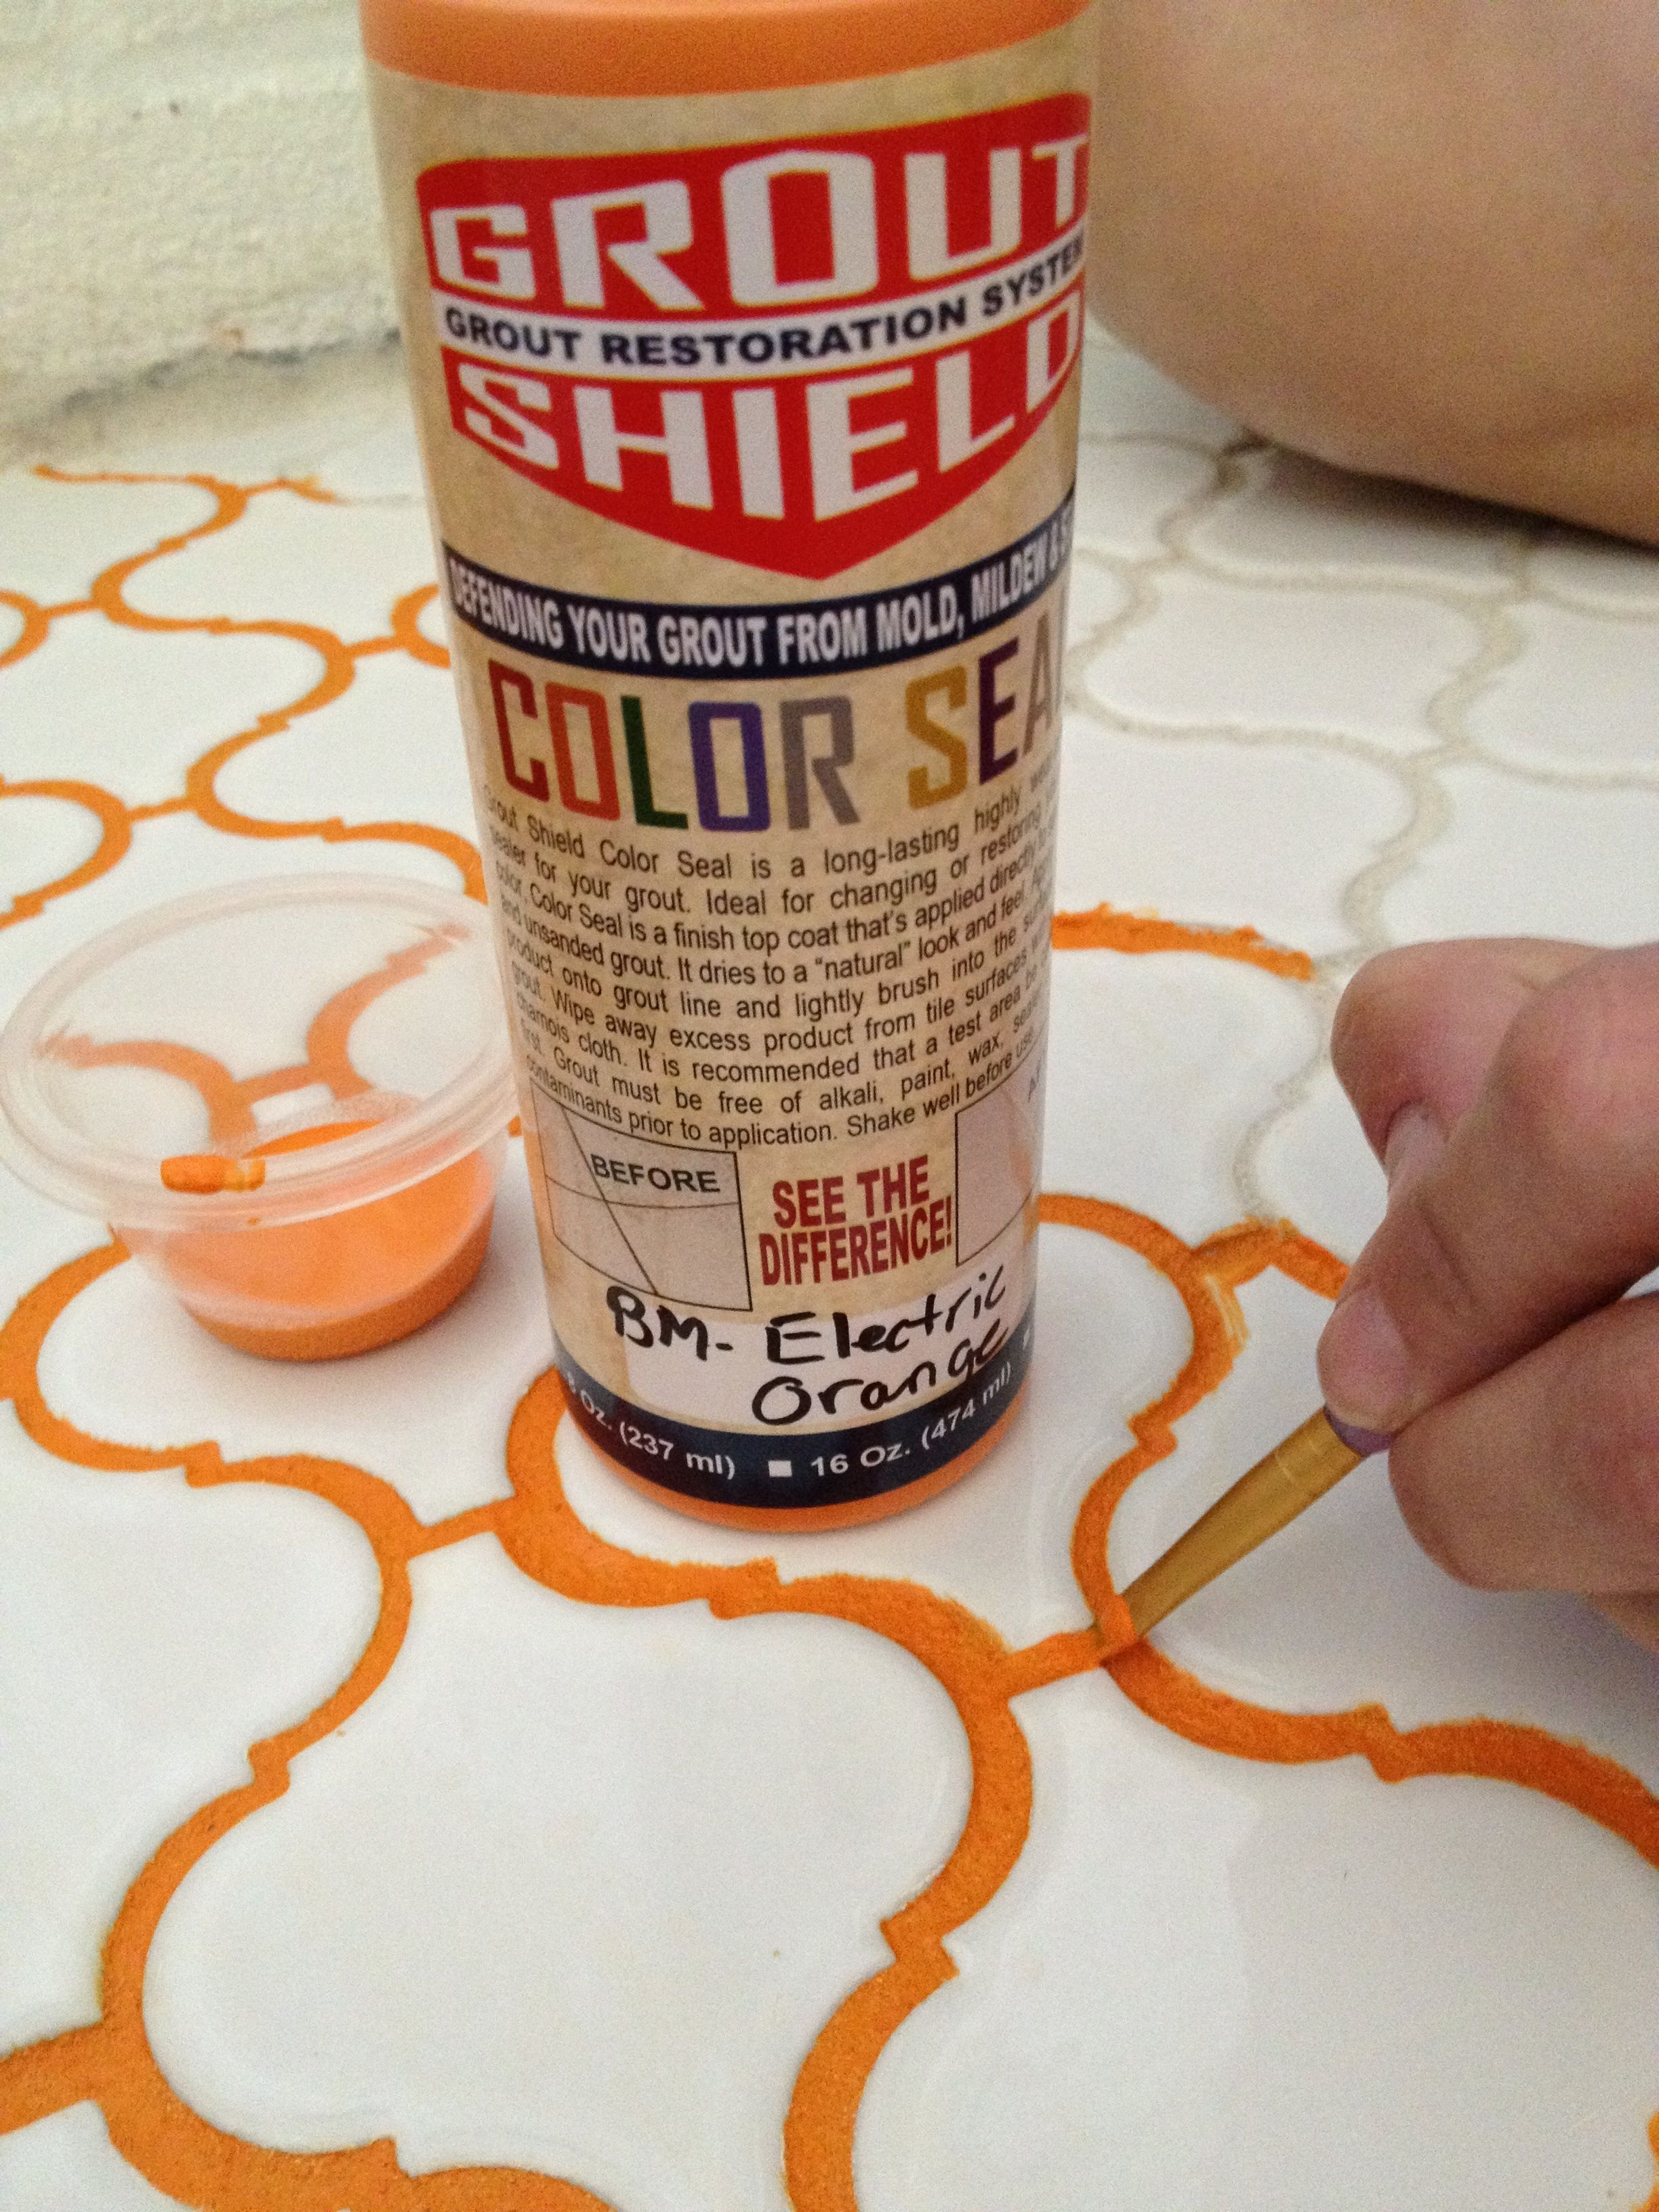 Groutshield colored grout sealer productssources pinterest